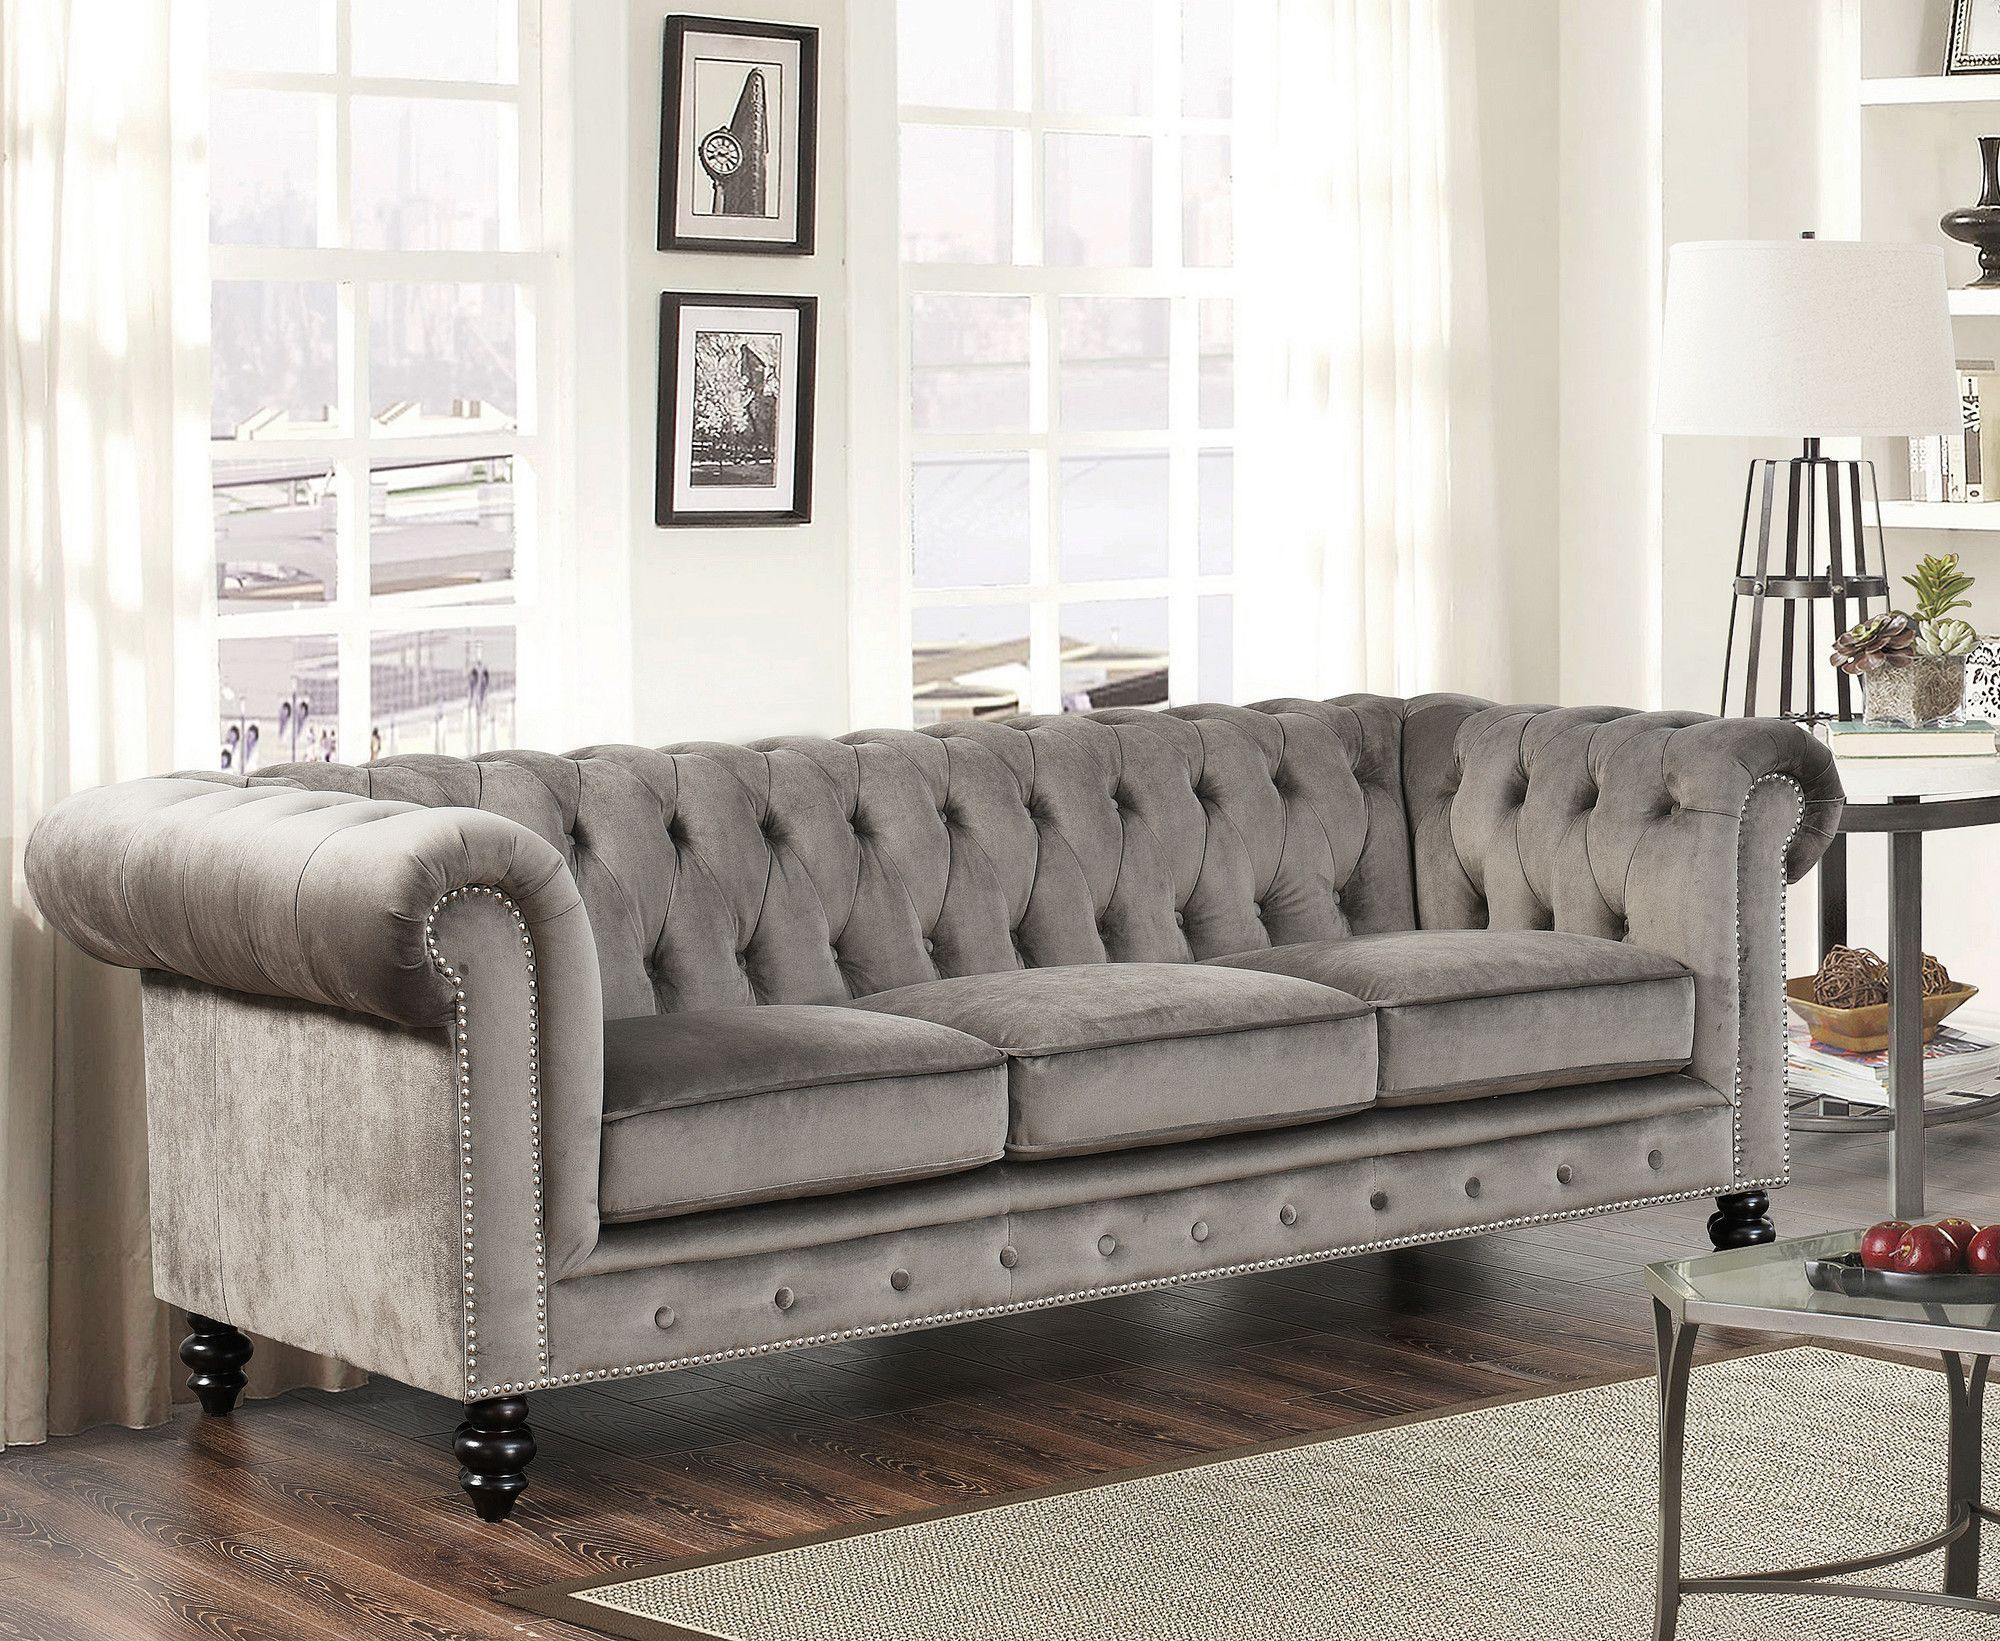 chesterfield sofa living room ideas lounger dimensions grand pinterest